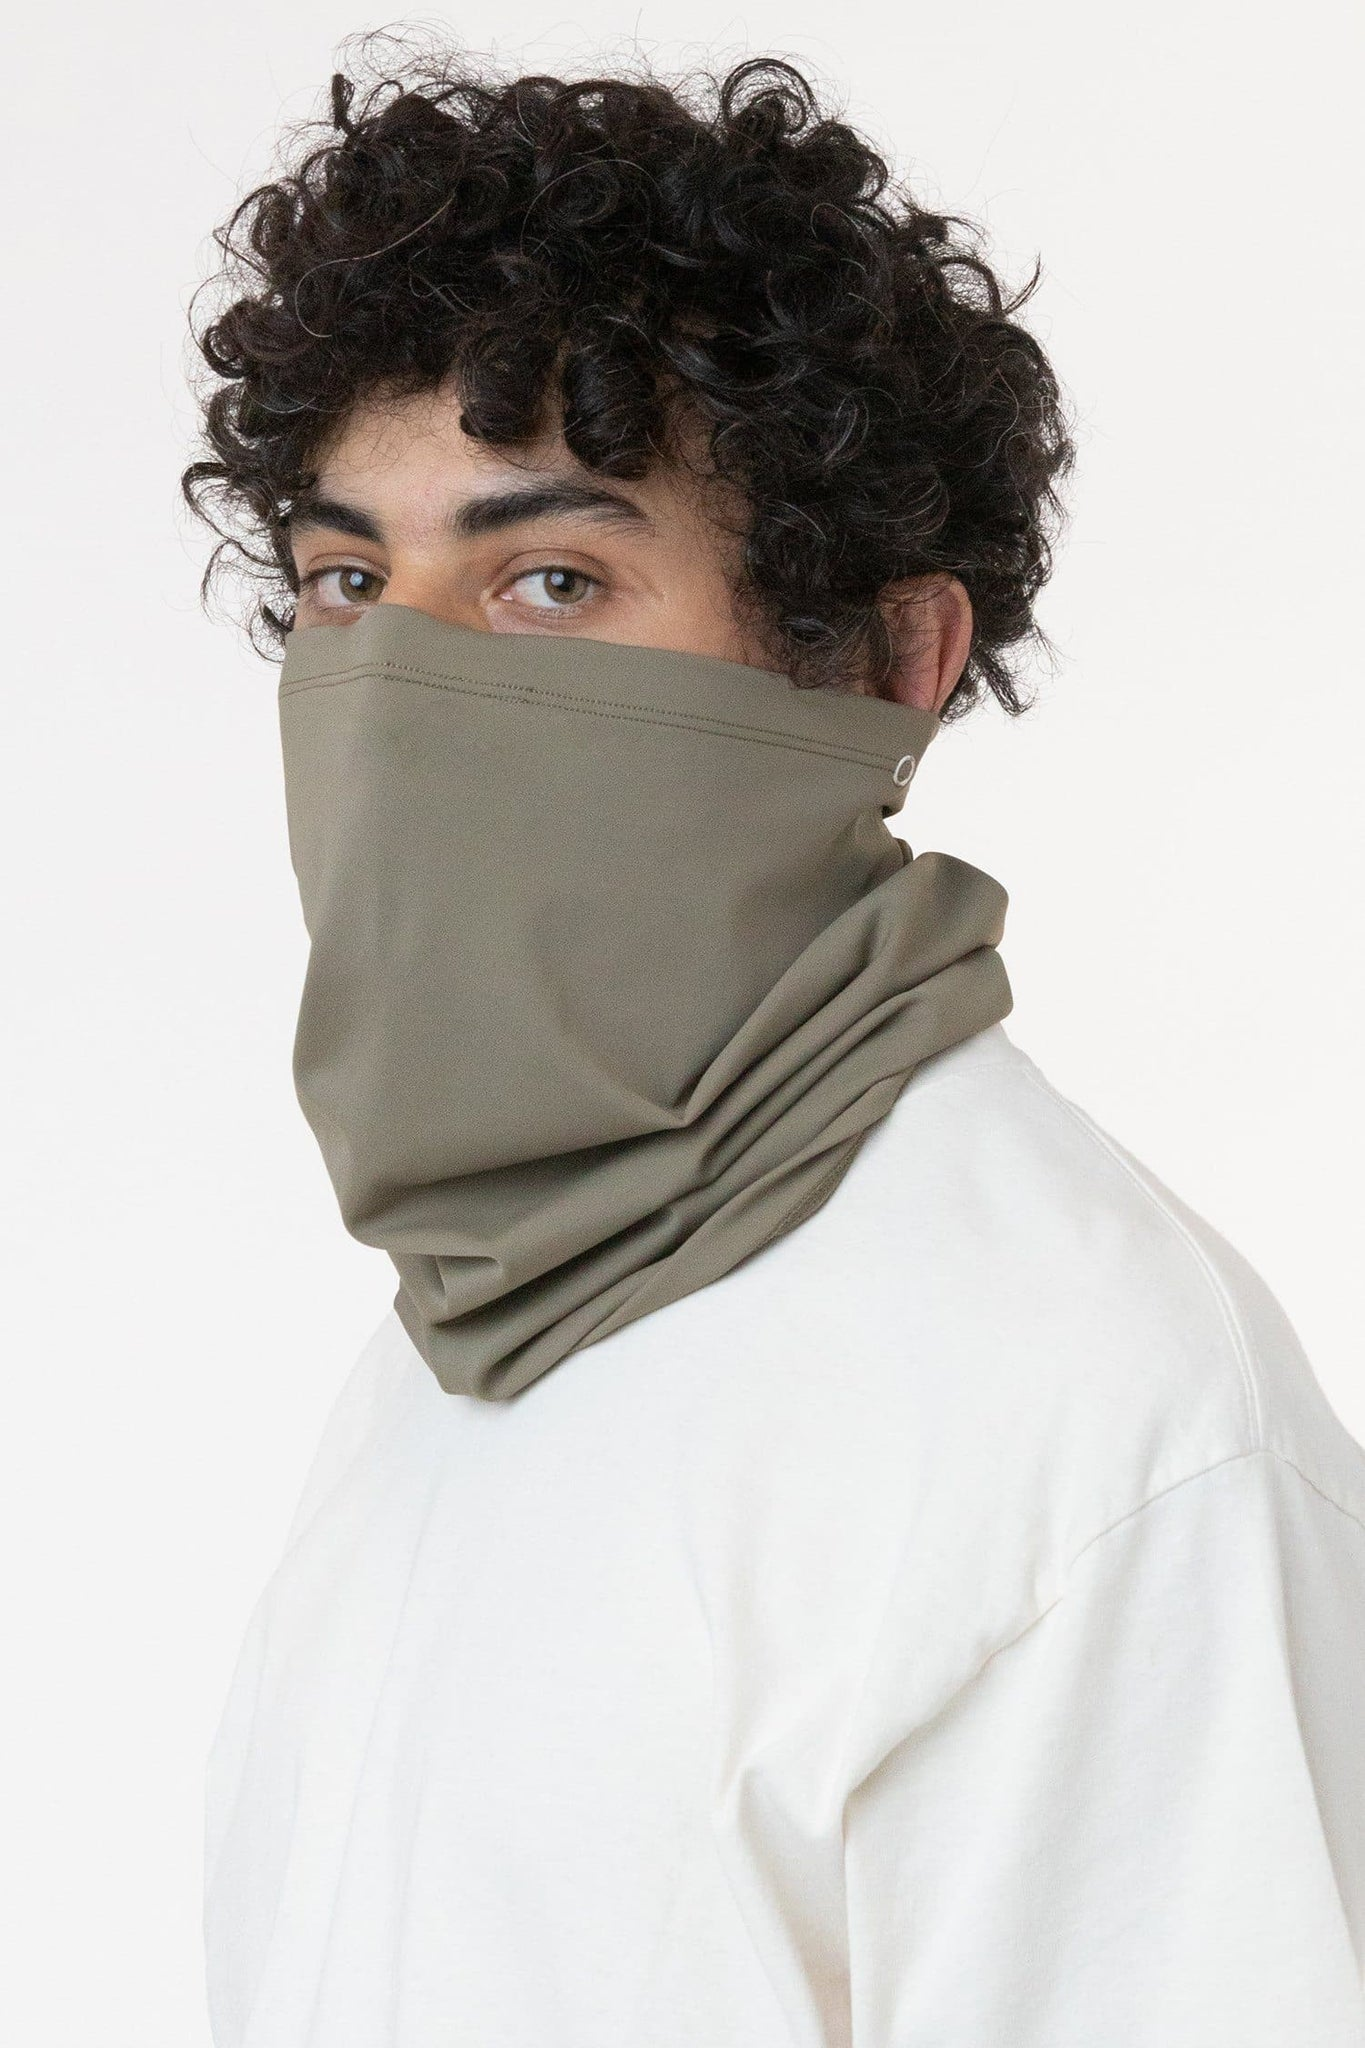 FACEGUARD - Unisex Face Guard